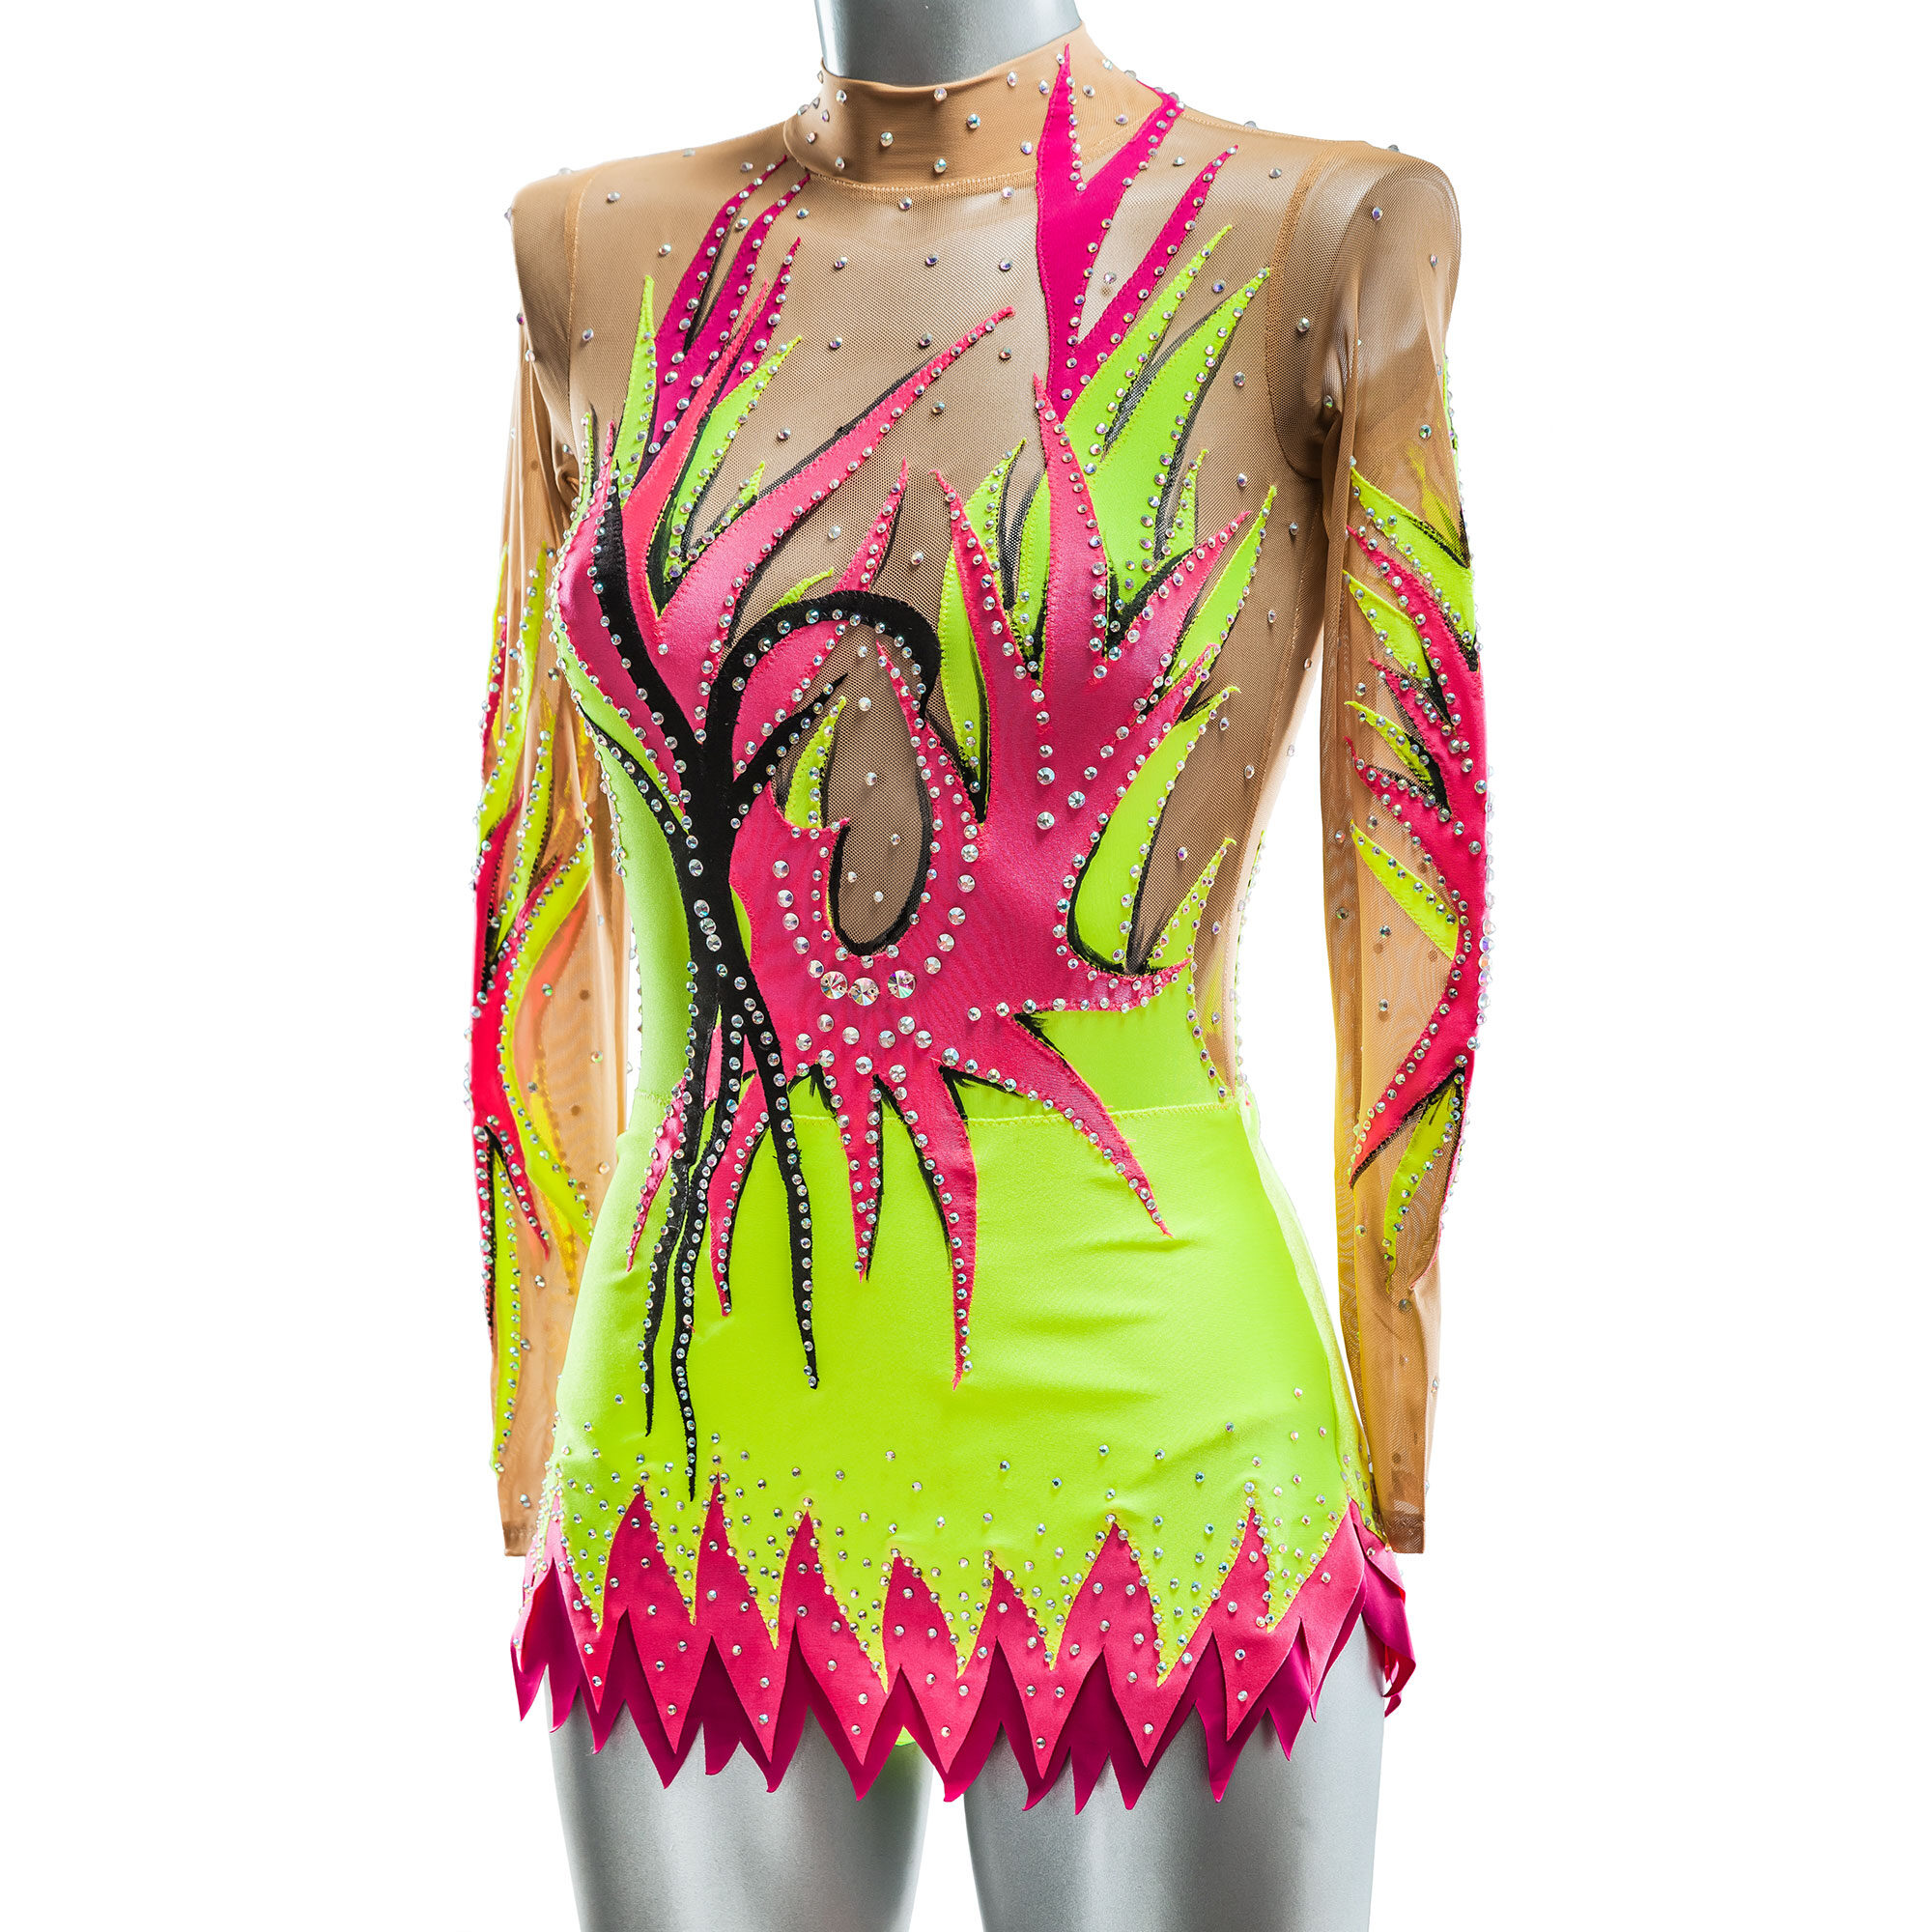 Rhythmic Gymnastics Leotard № 41 could be sewn as Dress Rhythmic Gymnastics, Ice Figure Skating Dress, Costume Acrobatic Gymnastics, Baton Twirling or Dance Leotard Suit. Colored appliques and amazing shapes